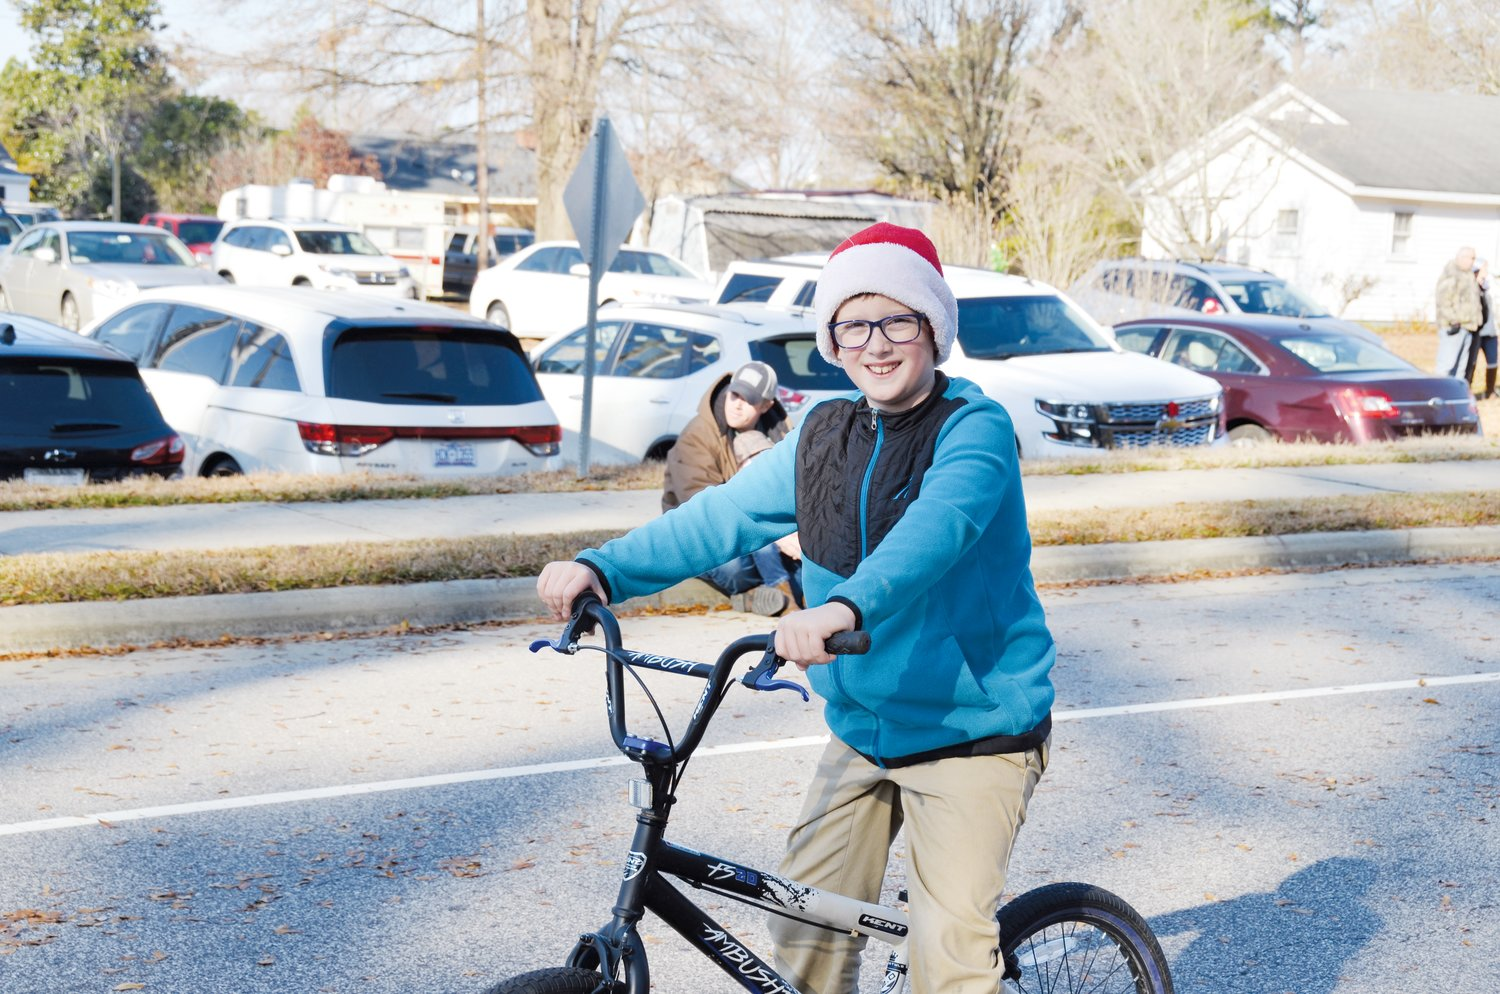 Mark Harrell enjoys the Angier Christmas parade from his bicycle Saturday morning. A large crowd enjoyed this year's event.